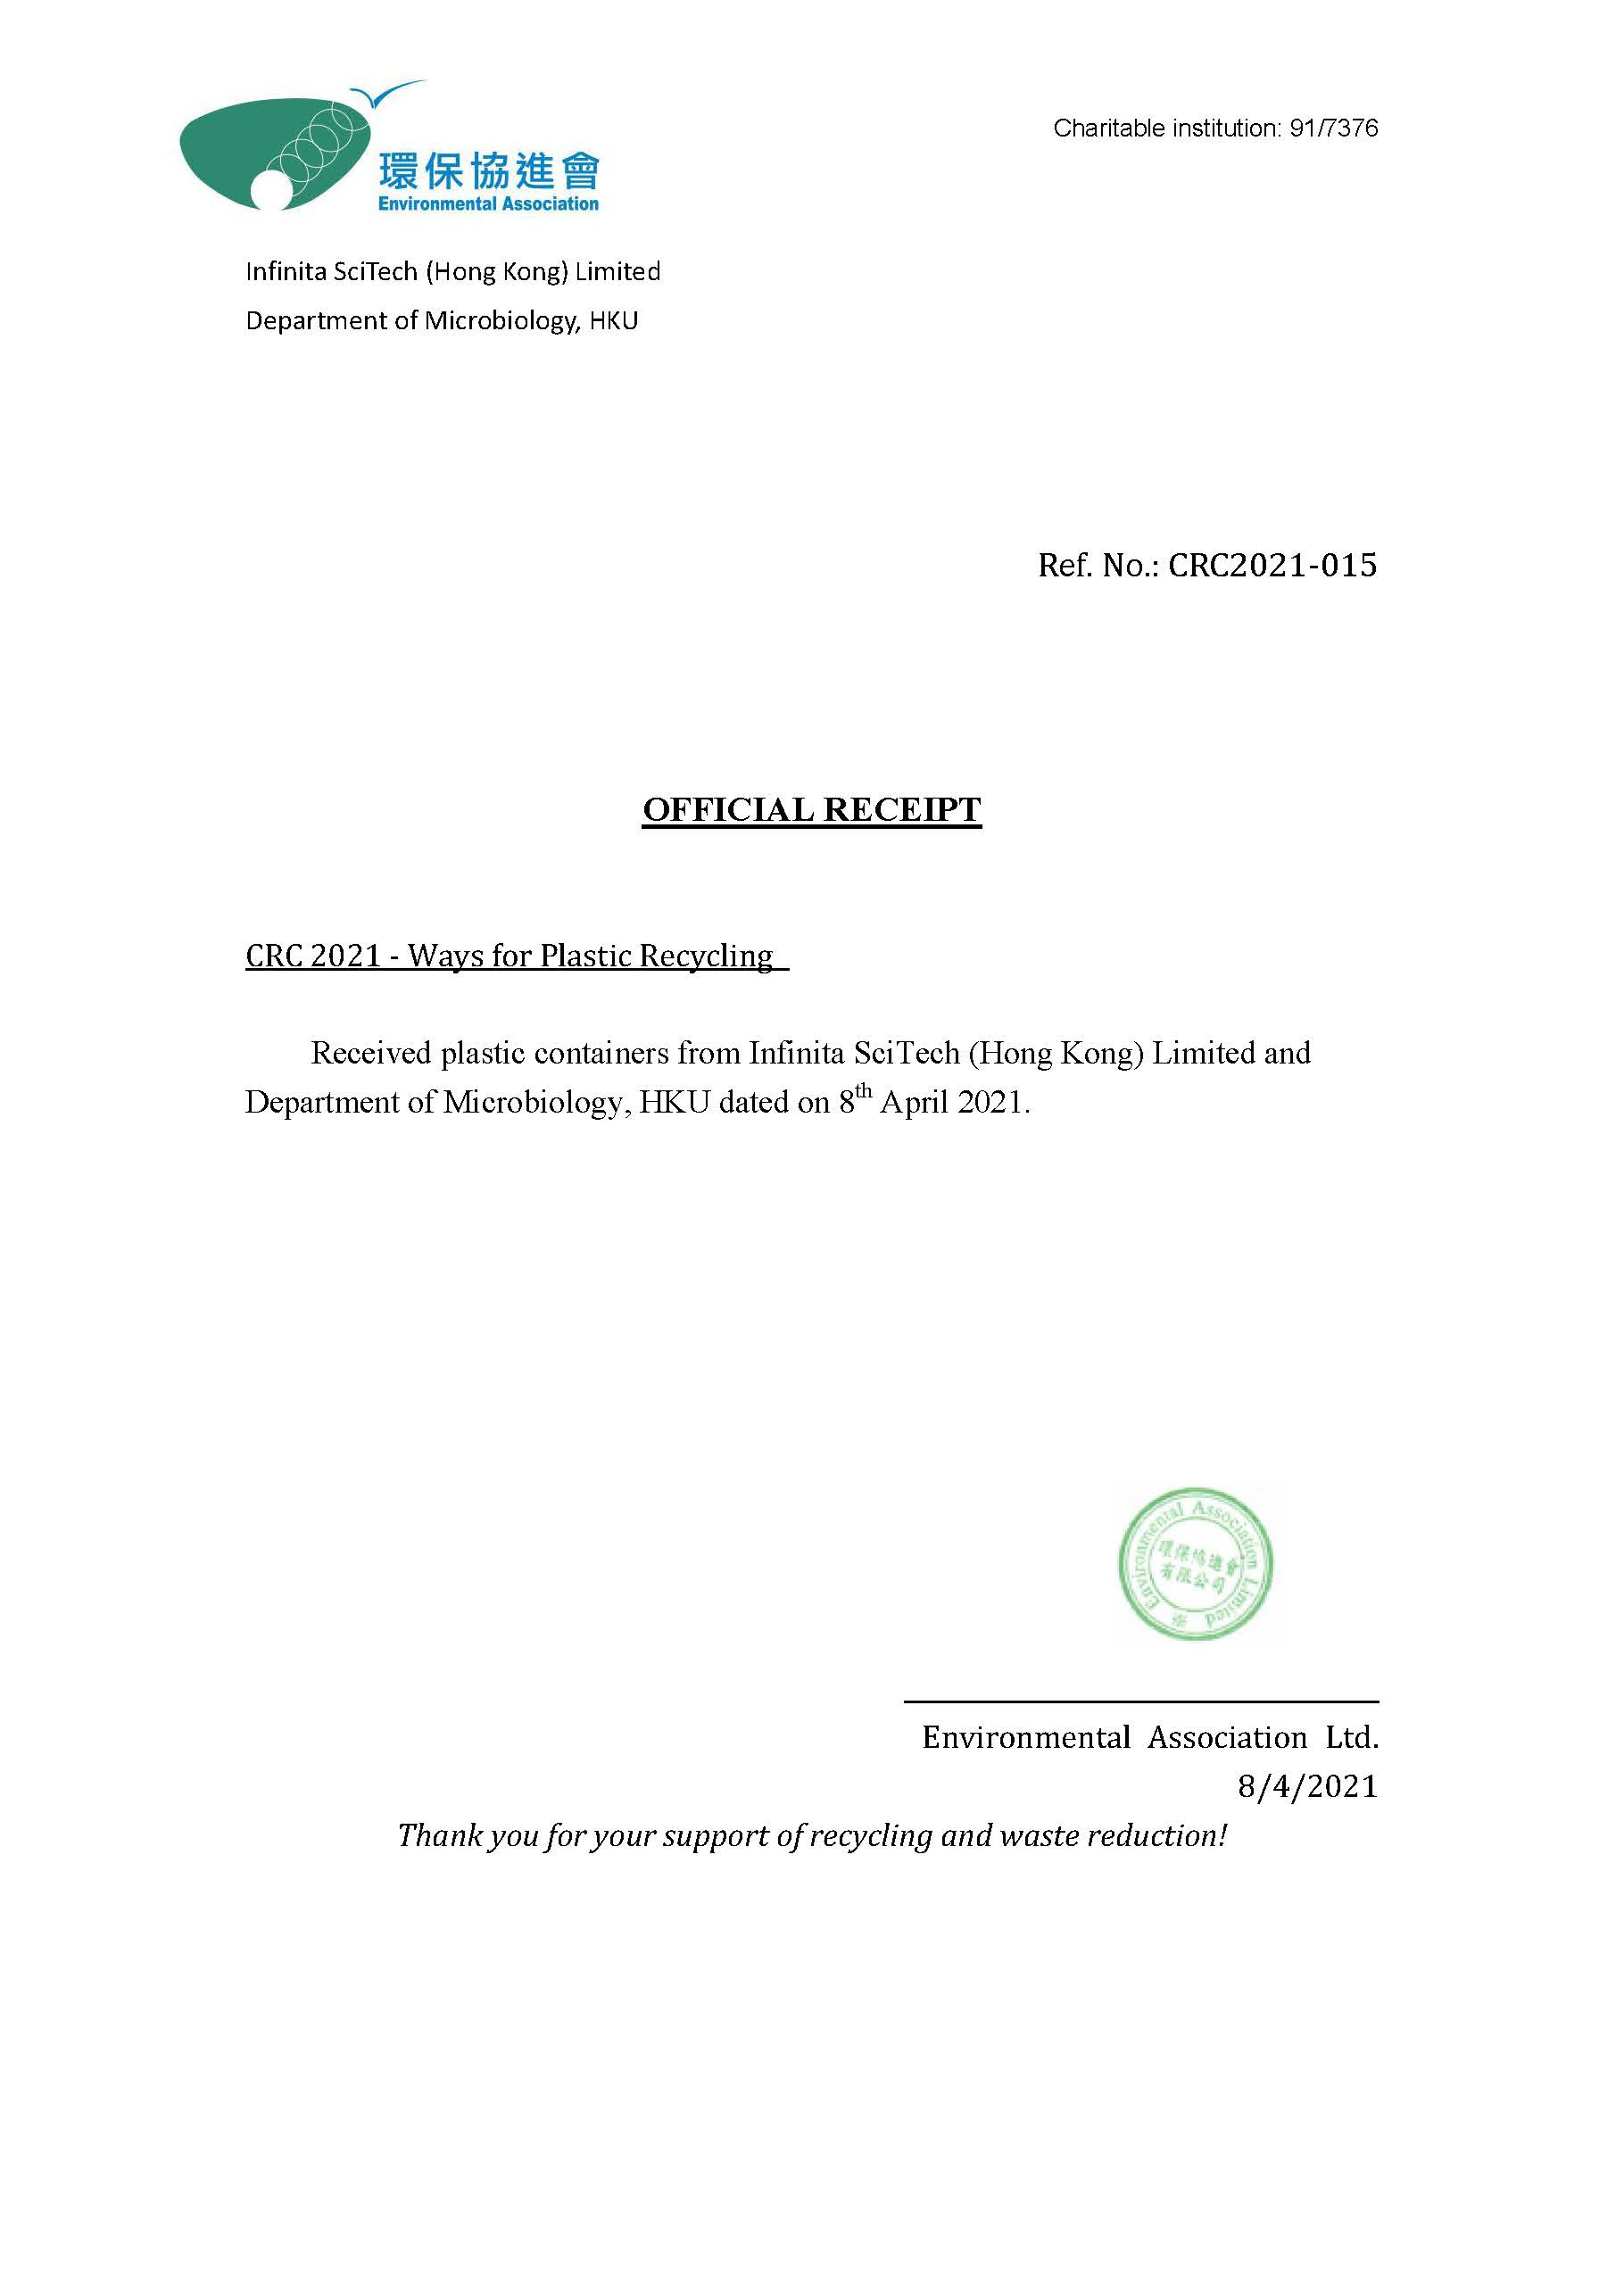 Offical receipt CRC2021-0015